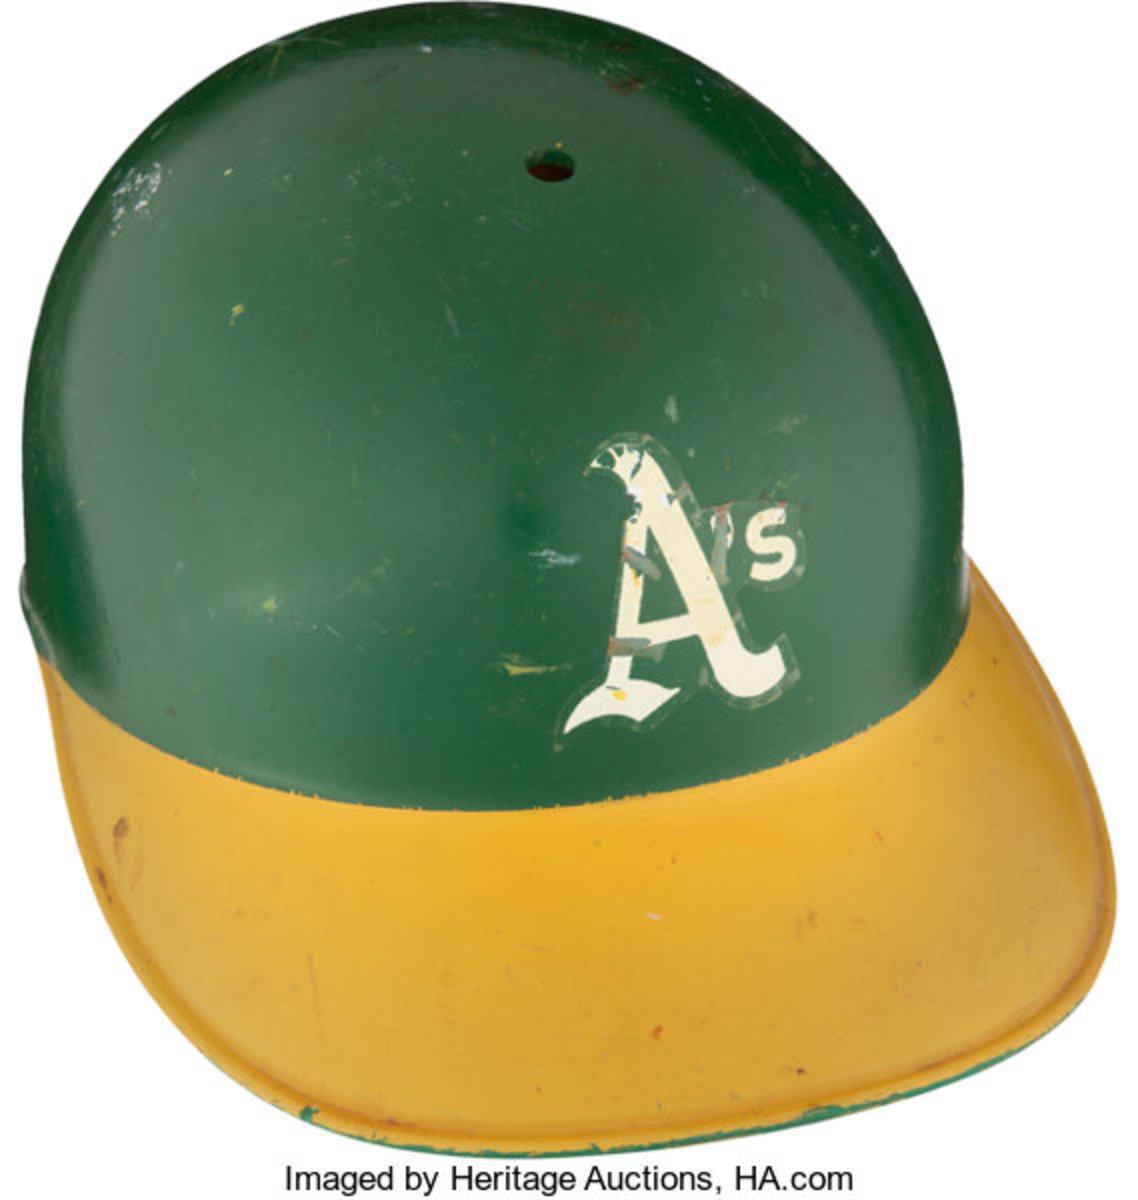 """The helmet Herb Washington wore in 1974-75 as a """"designated runner"""" is on auction with Heritage Auctions"""